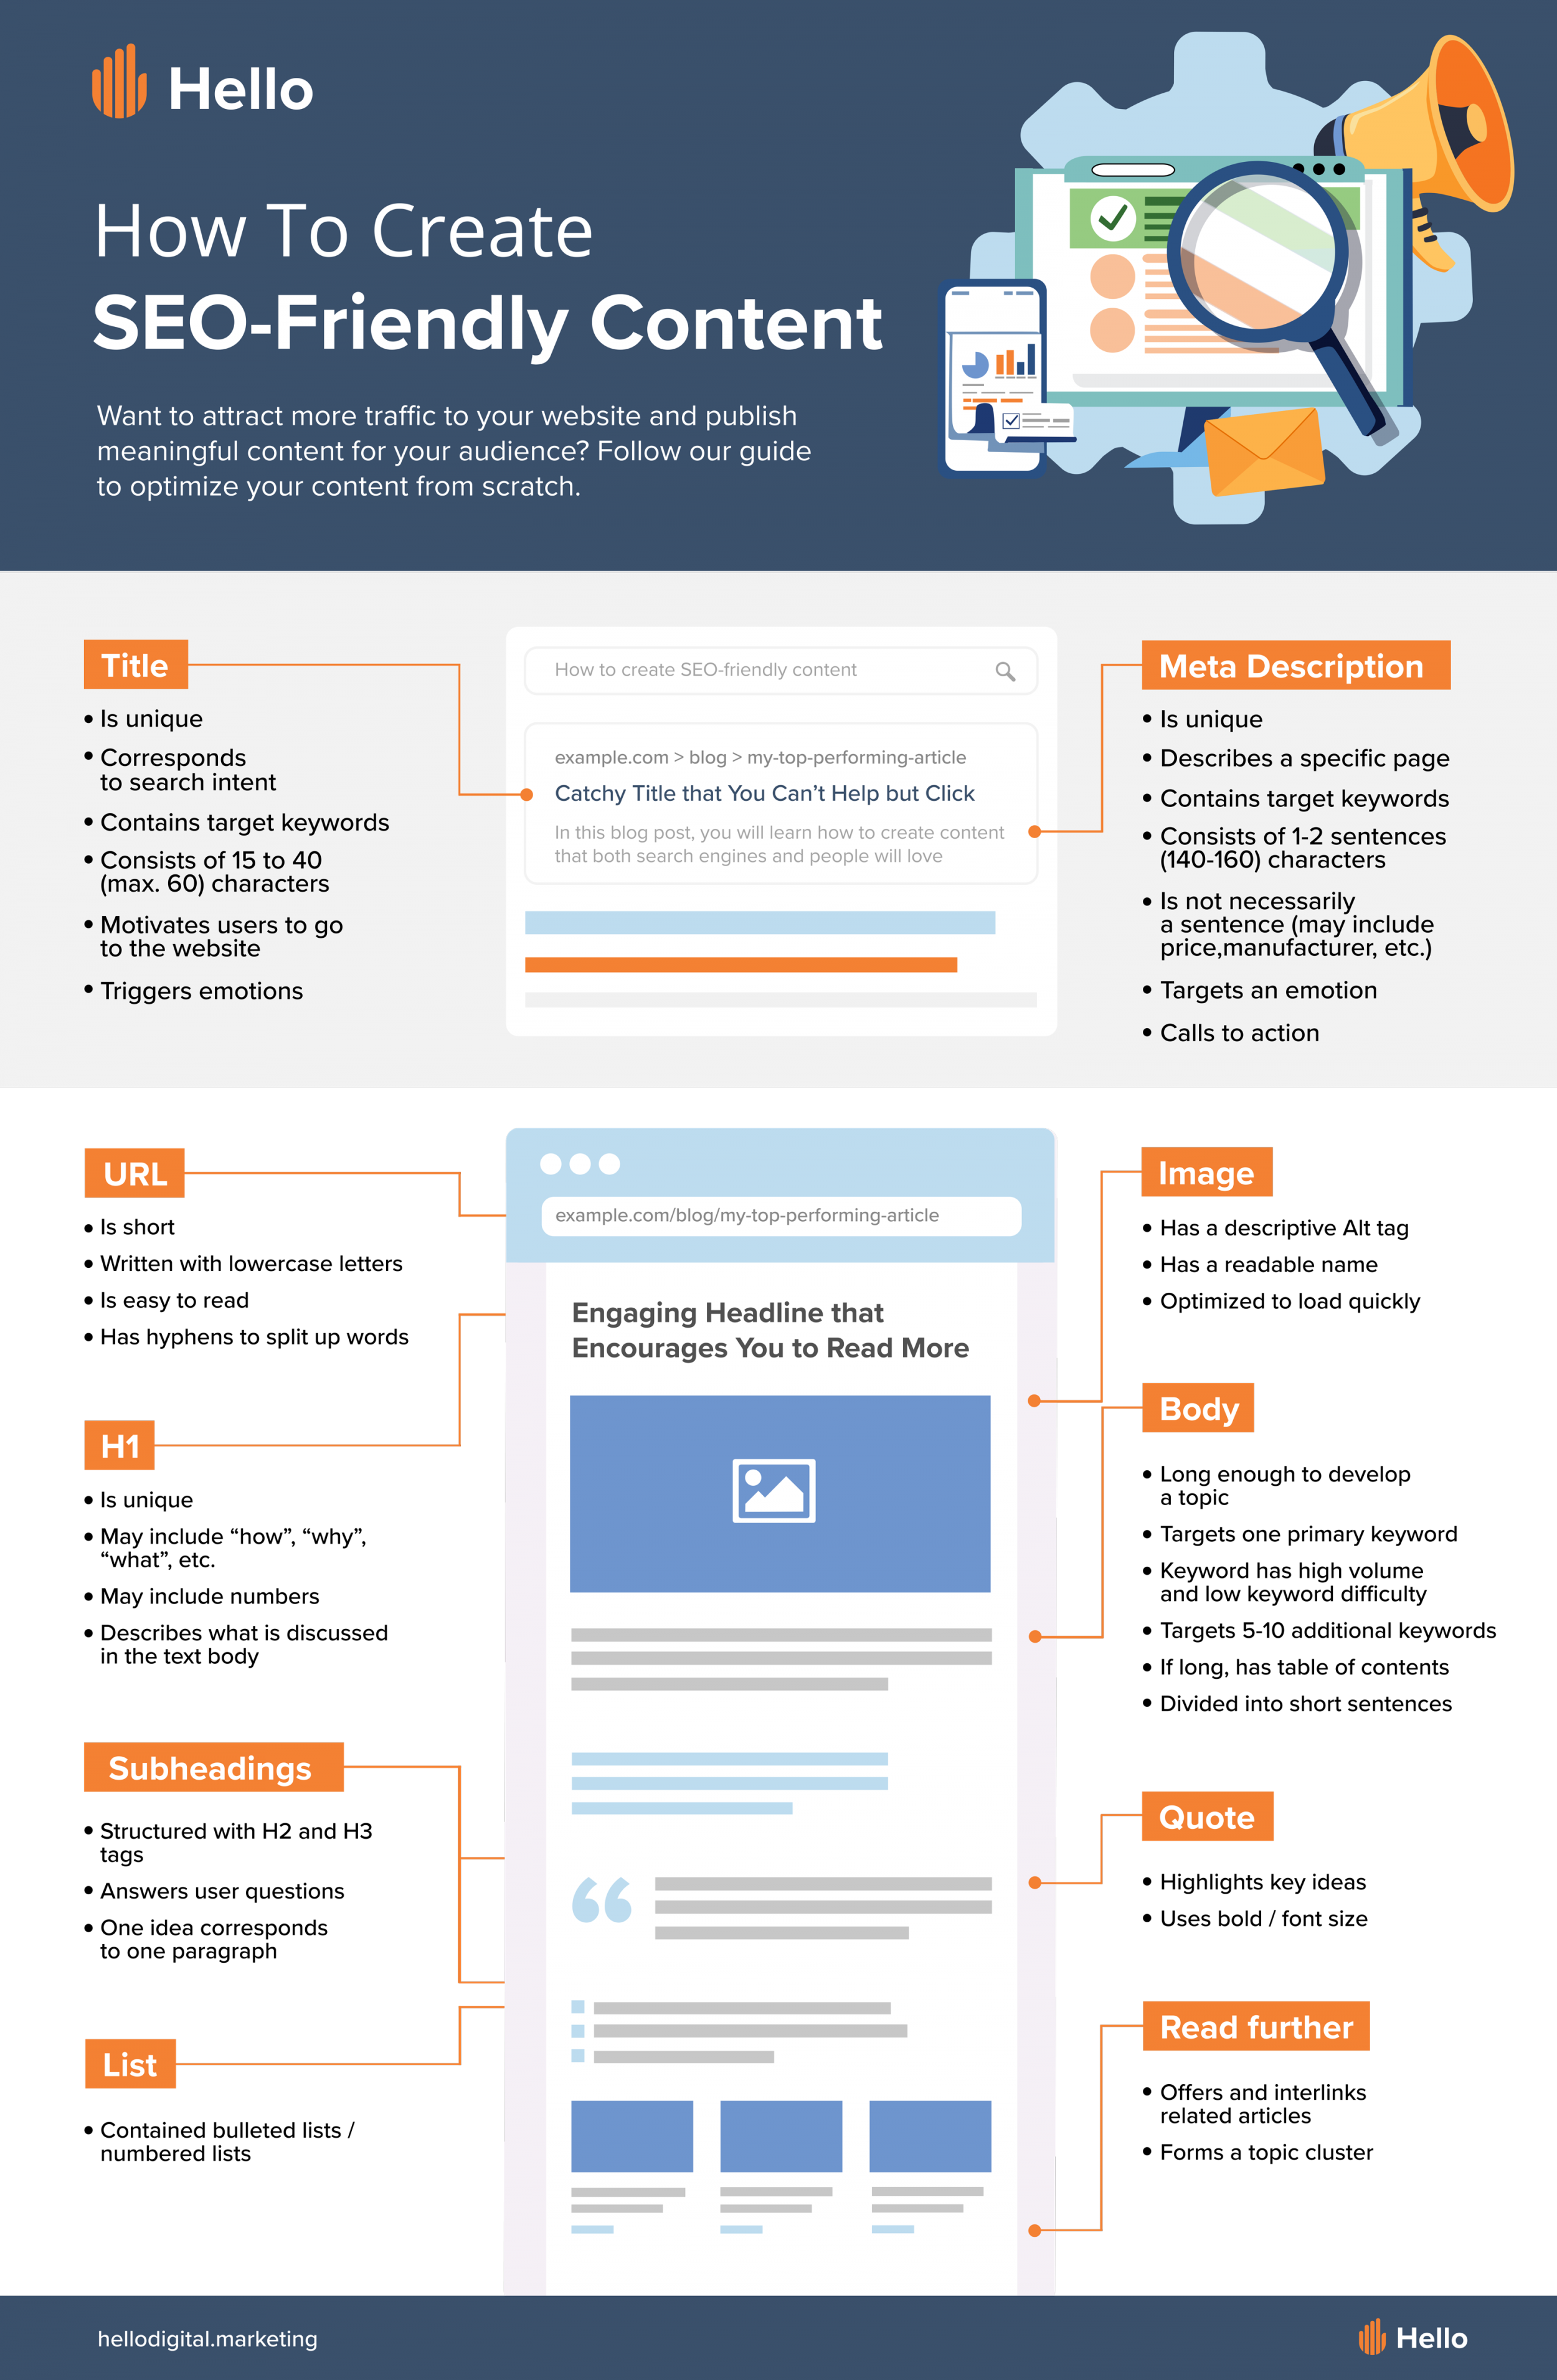 [Infographic] How To Create Seo-Friendly Content 2